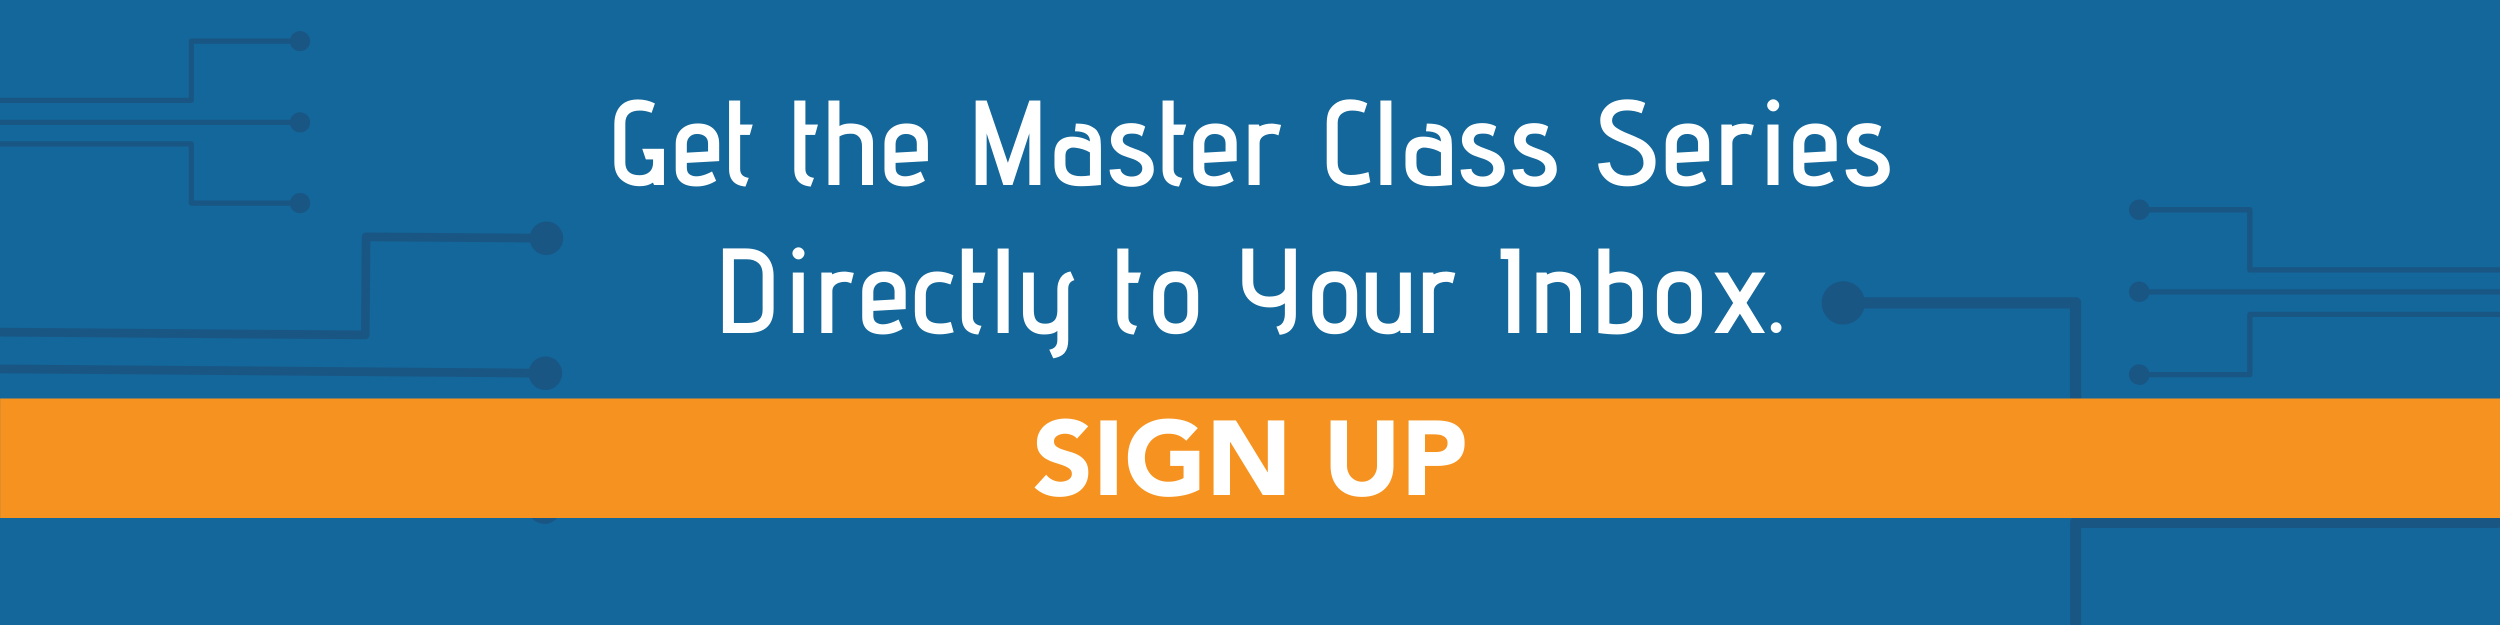 Get the Master Class Series Directly to Your Inbox